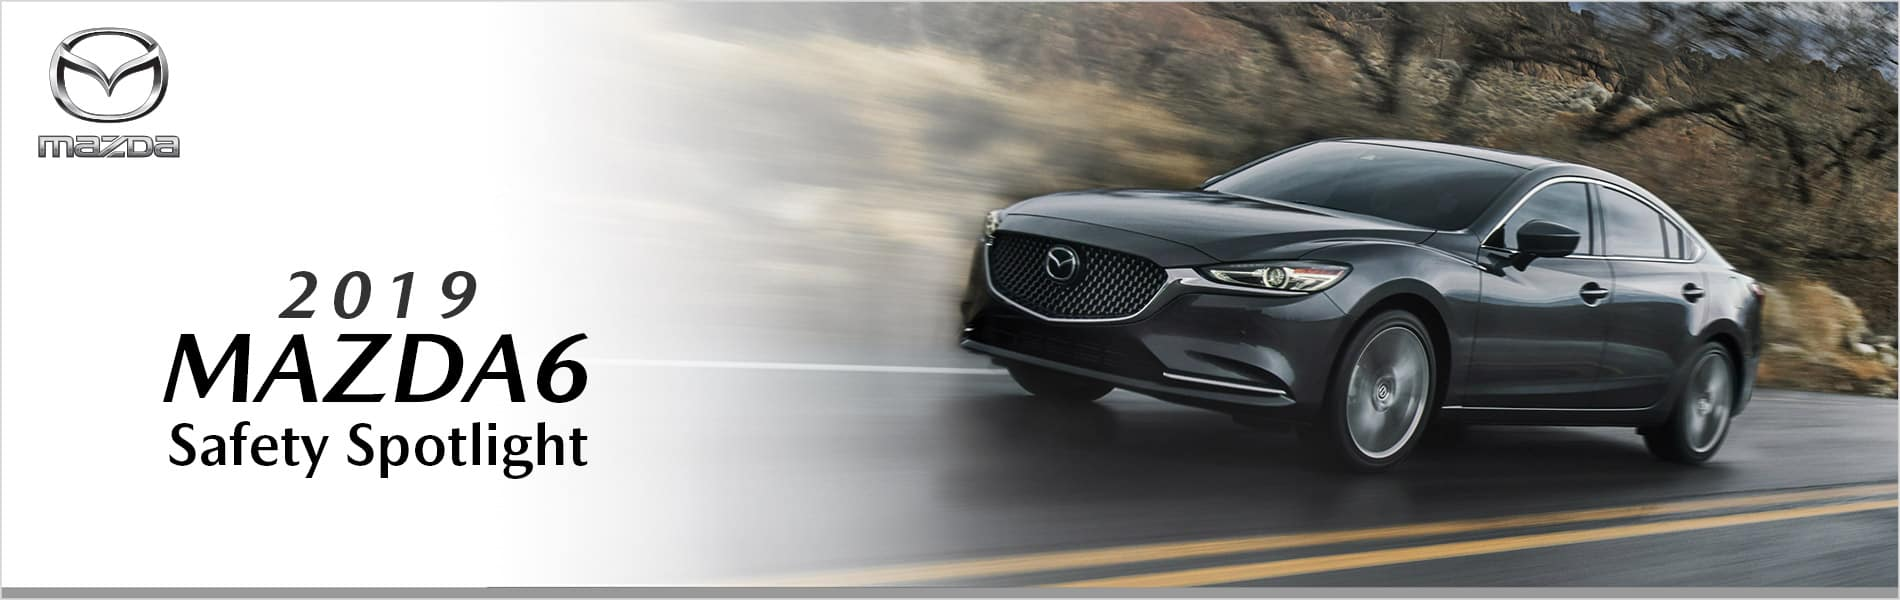 The award-winning safety features on the 2019 Mazda6 at Mazda of Bedford in Ohio